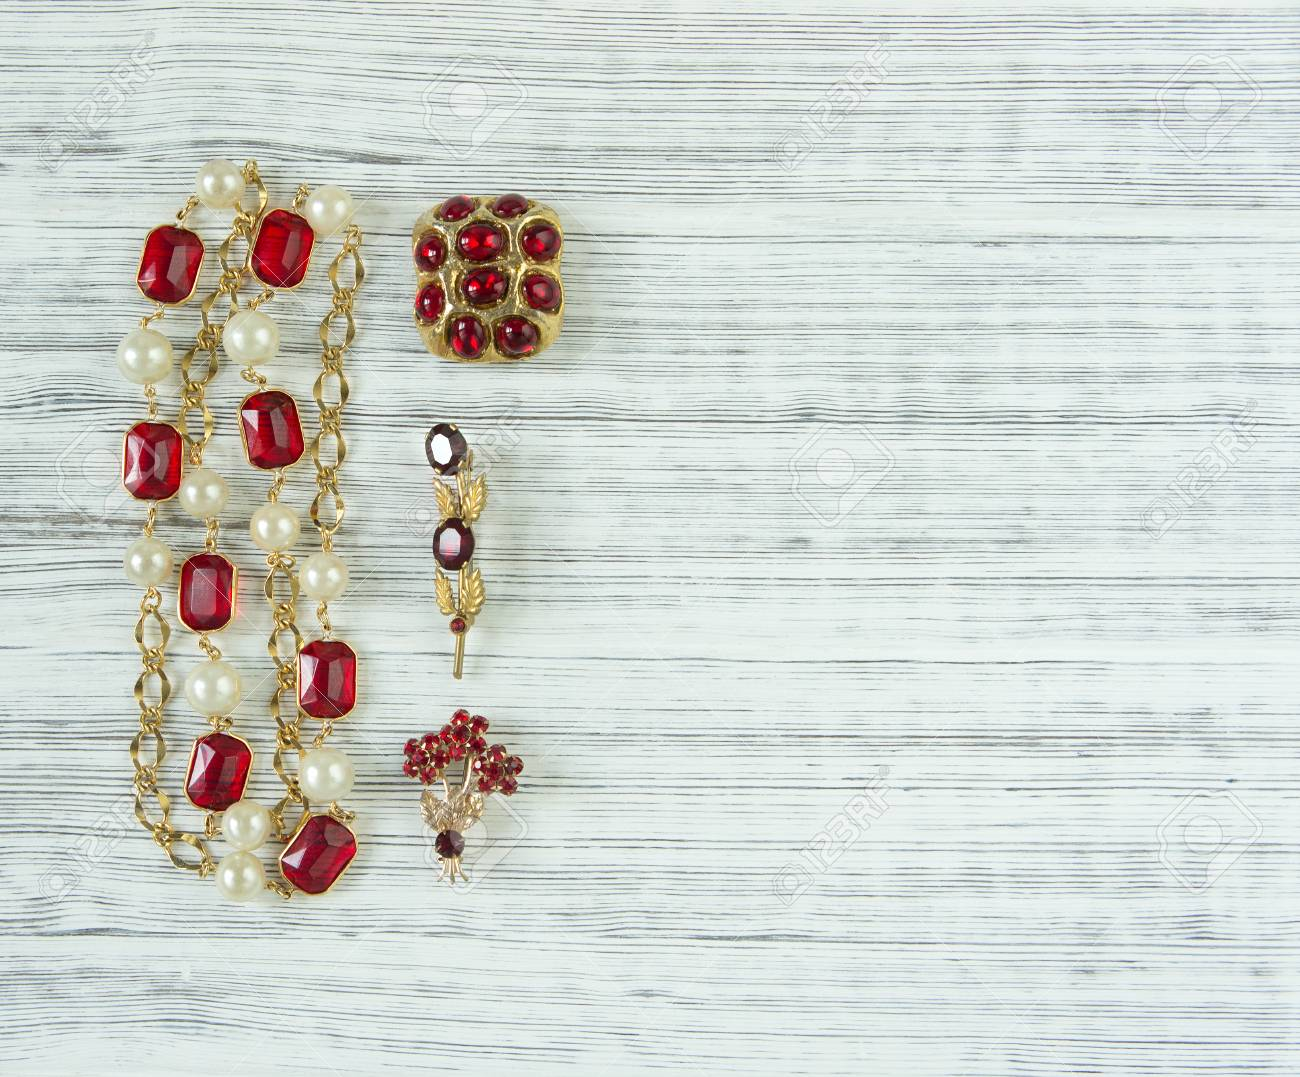 Stock Photo   Womanu0027s Jewelry. Vintage Jewelry Background. Beautiful Bright Rhinestone  Brooch And Necklace On Wood Background. Flat Lay, Top View With Copy ...